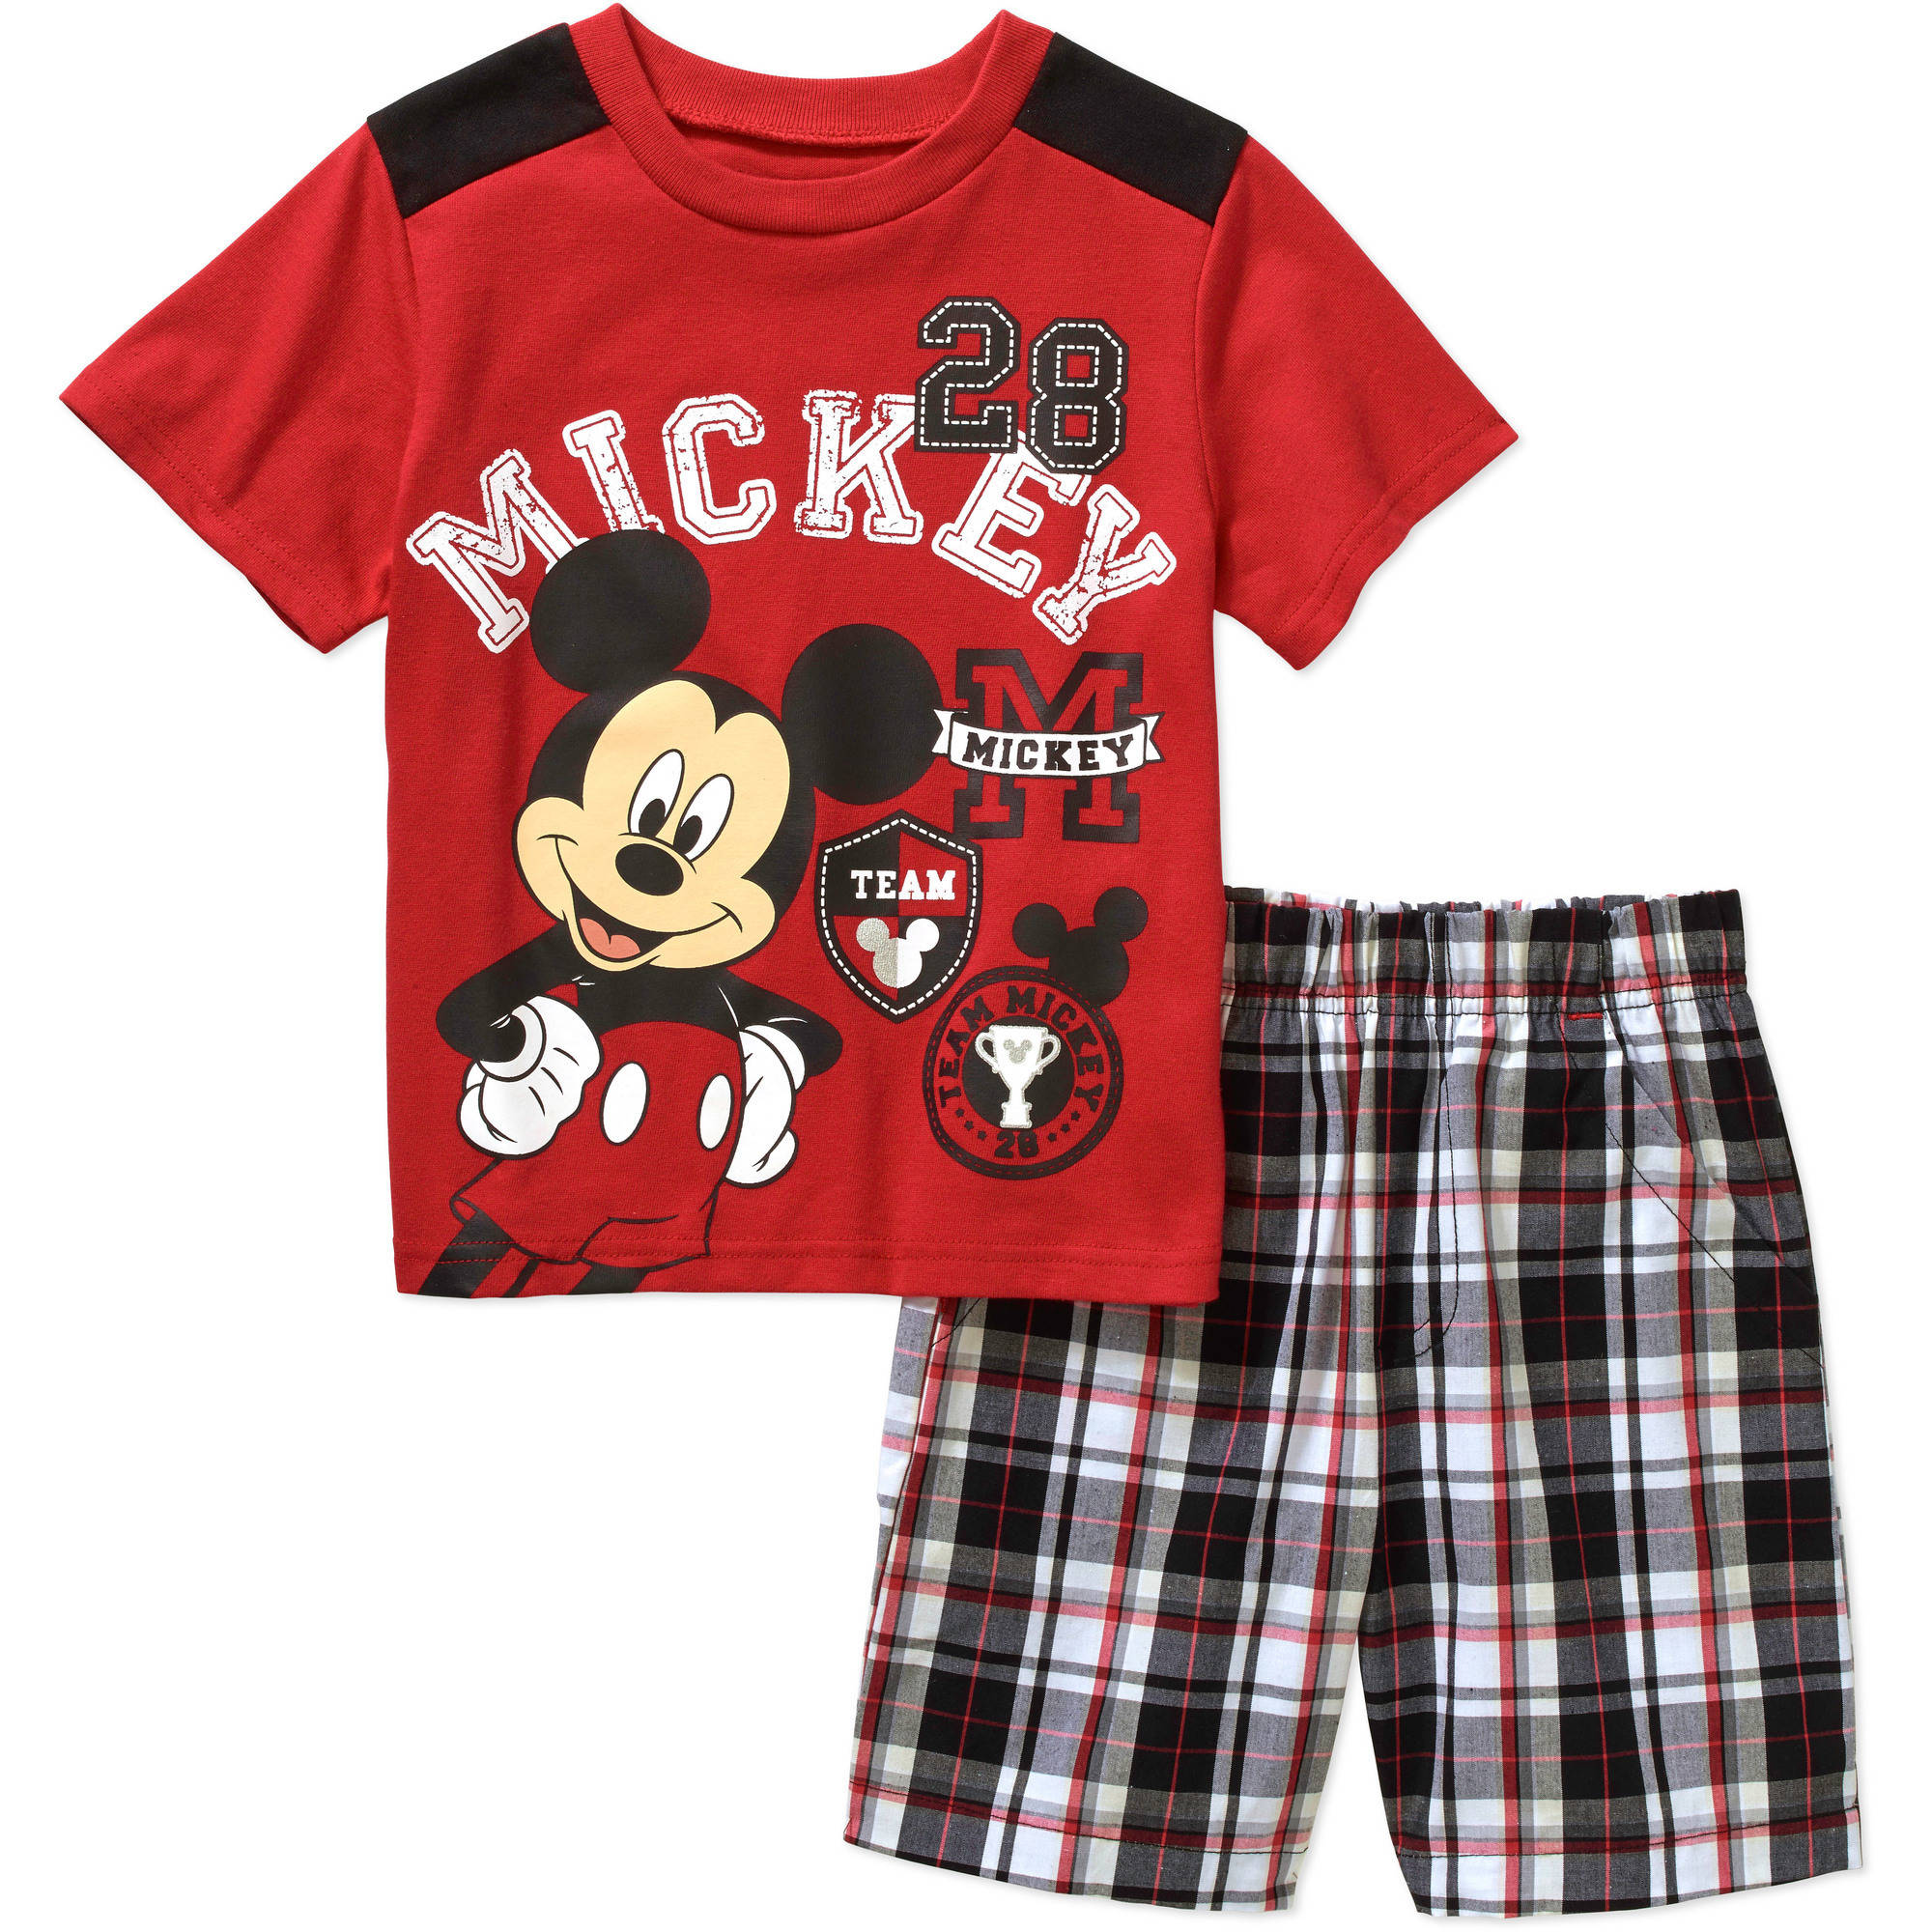 Mickey Mouse Toddler Boy Varsity Tee and Shorts Outfit Set